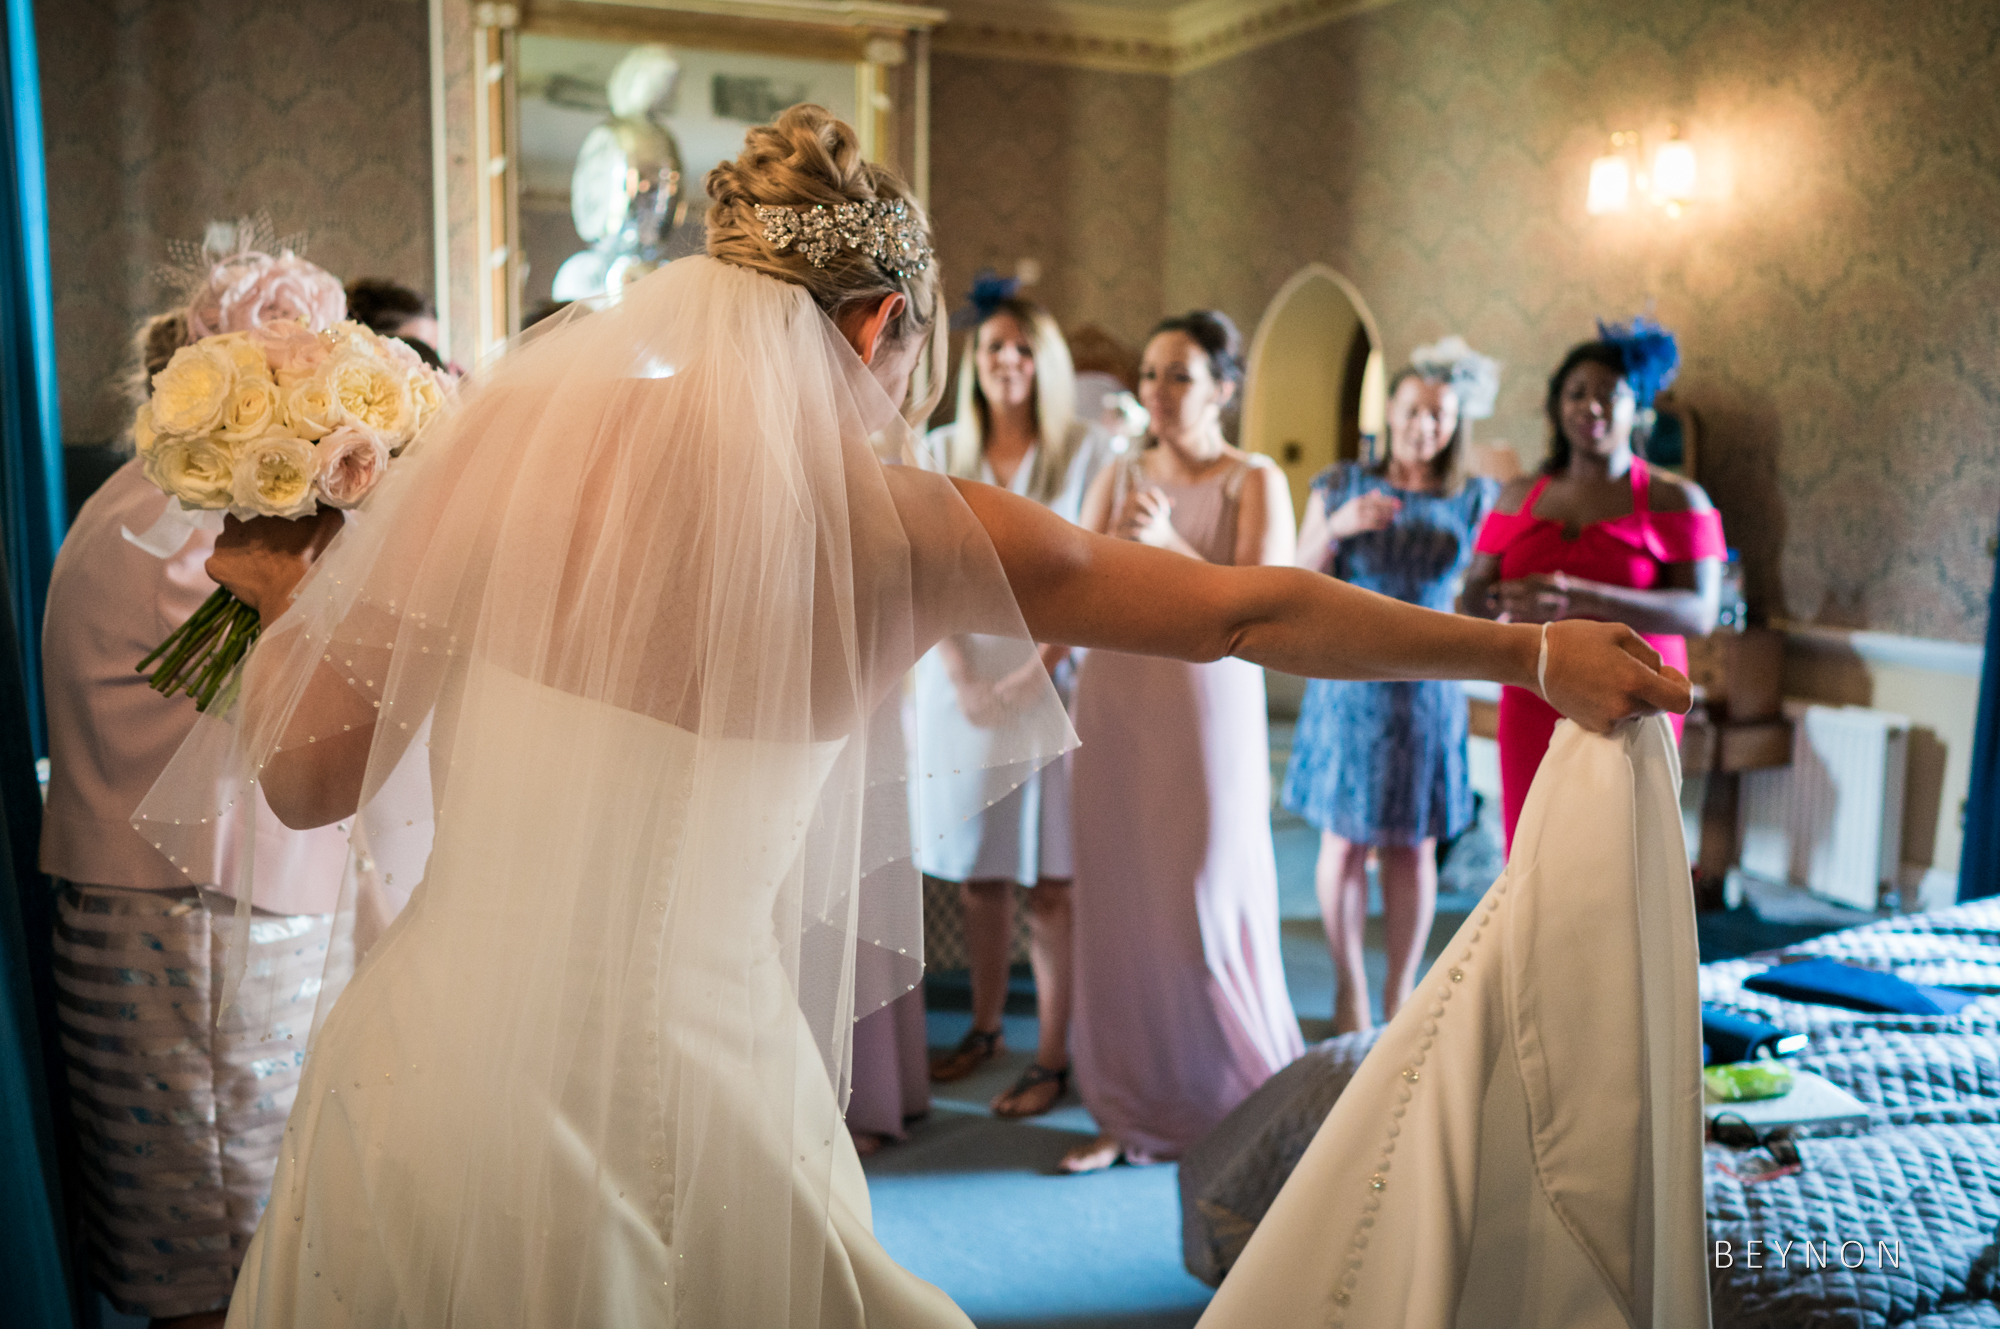 The bride shows of the dress to her bridesmaids